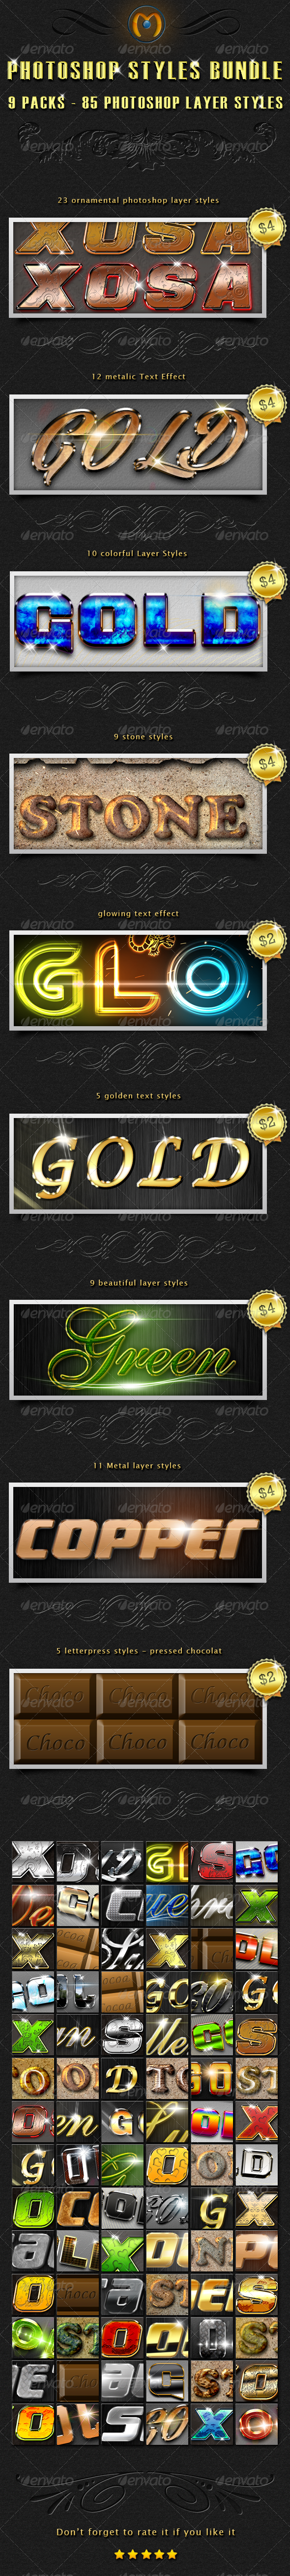 85 Photoshop Styles Bundle 2 - Text Effects Styles